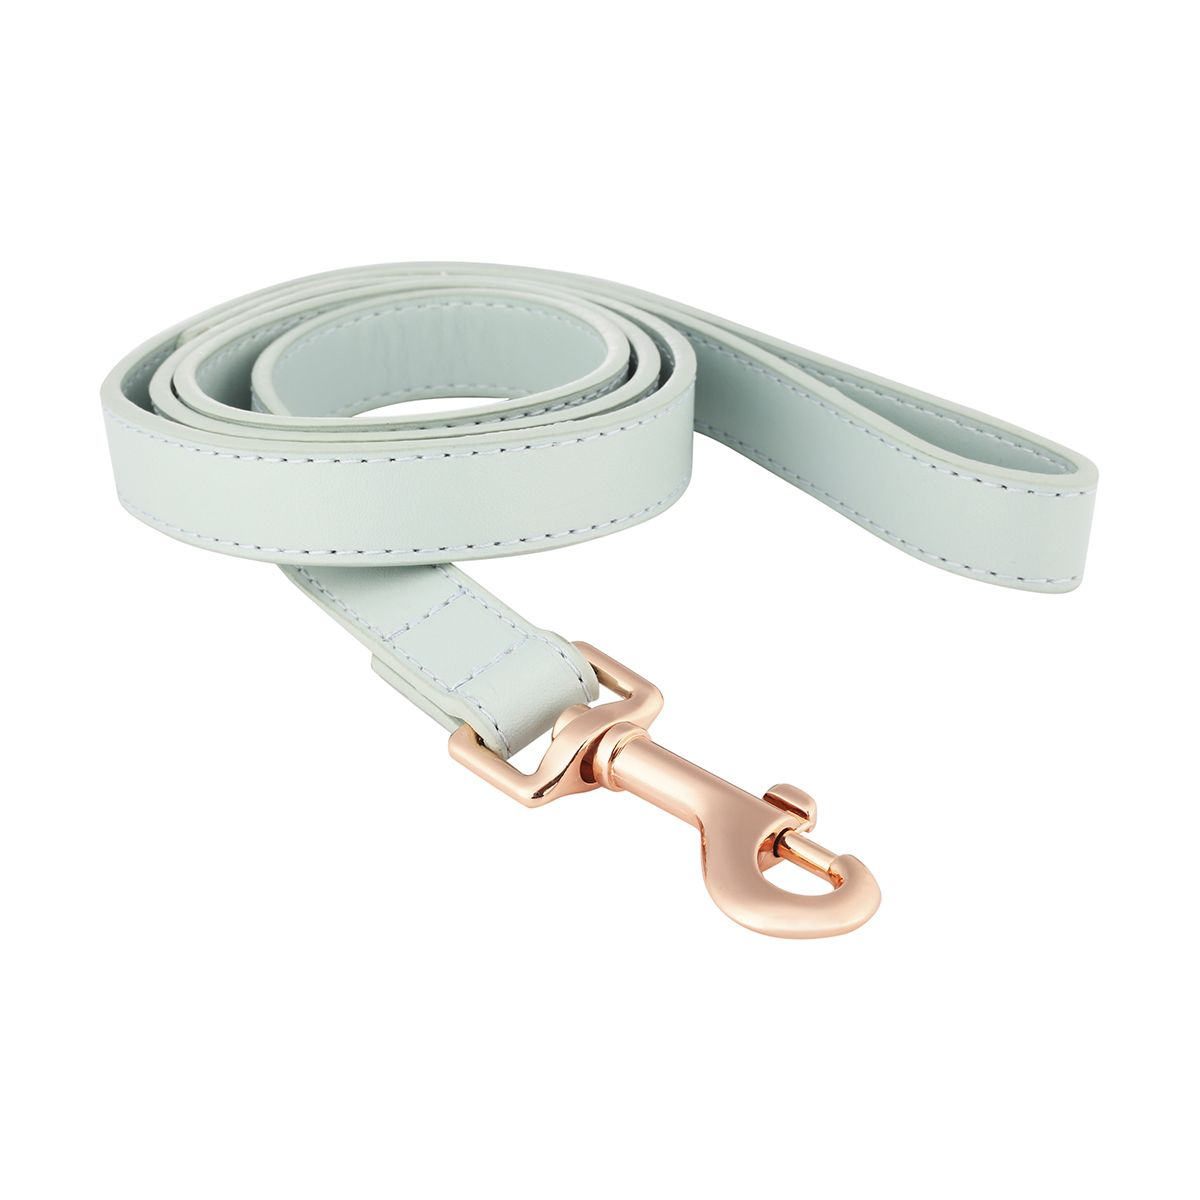 Dog Lead Mint Rose Gold Look Kmart Dog Leads Dog Accessories